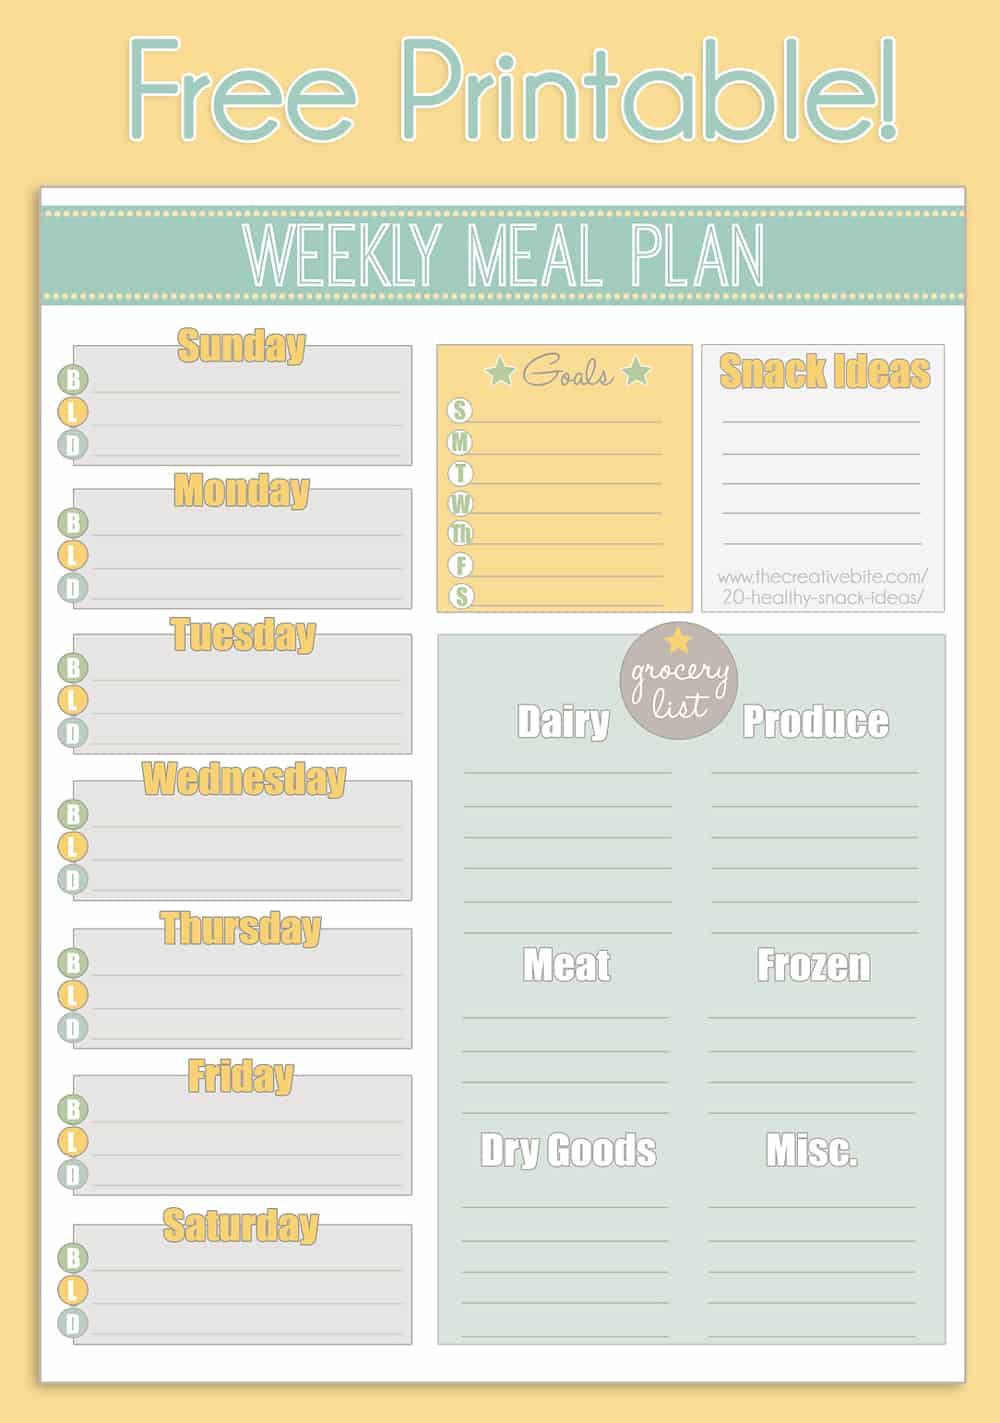 This is a photo of Declarative Printable Weekly Menu